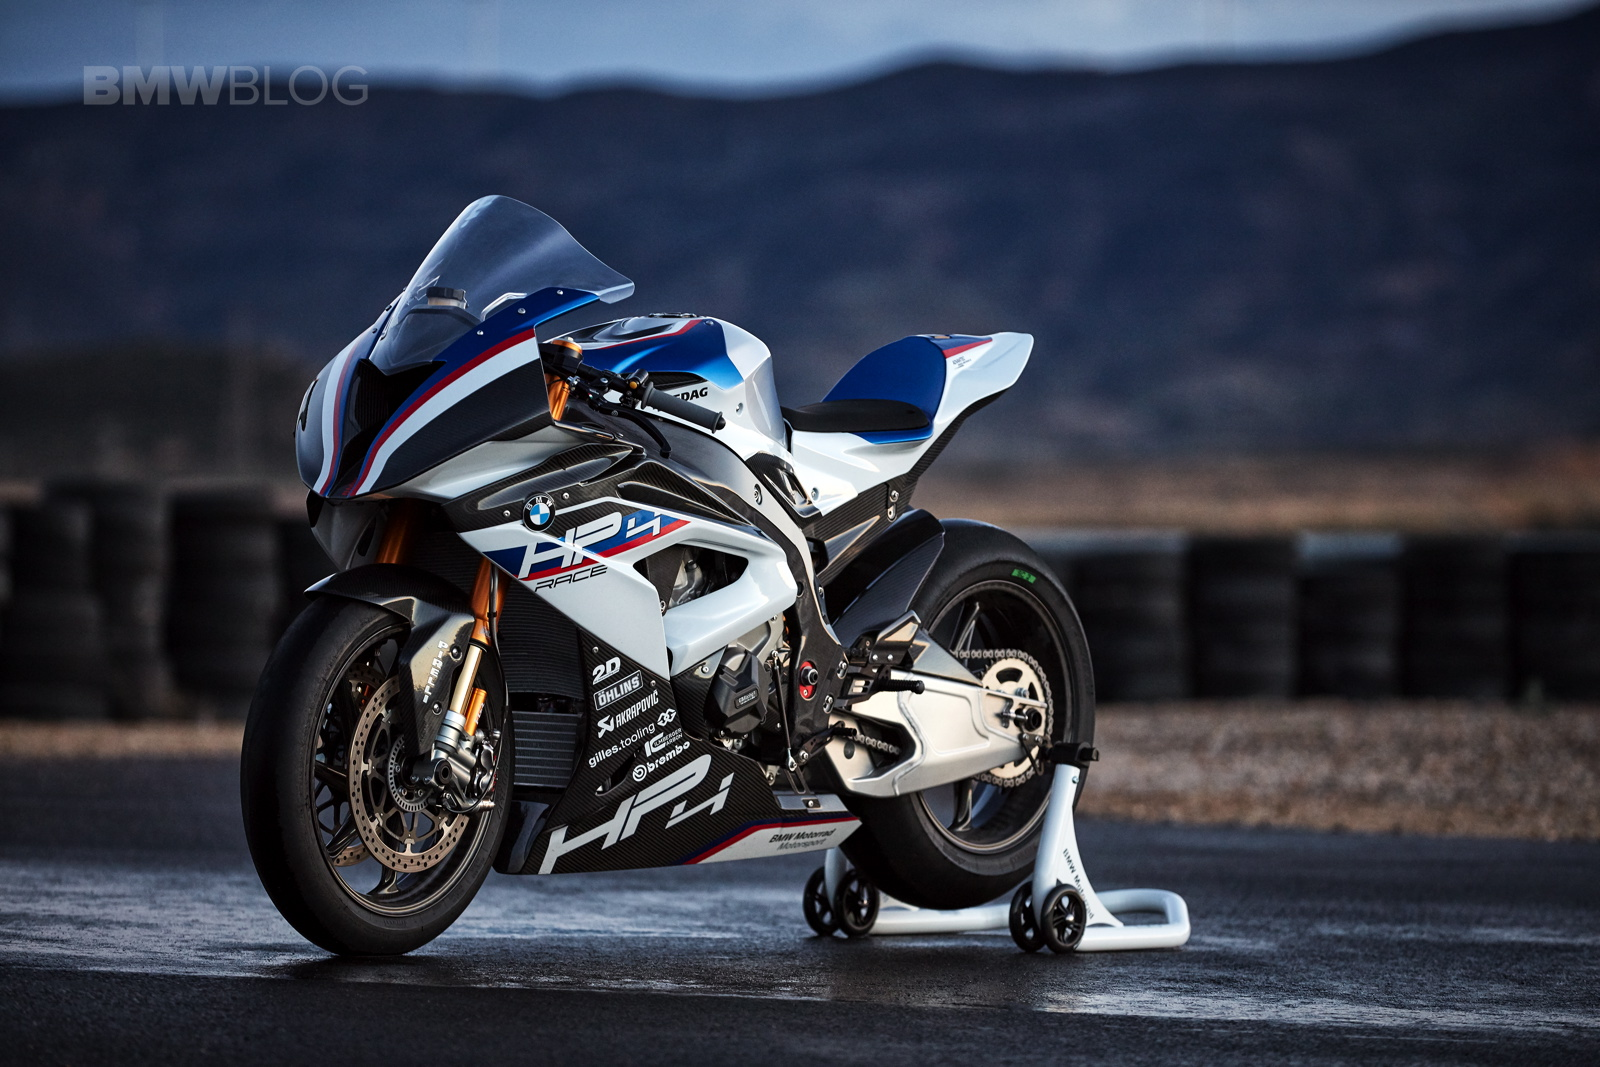 World Premiere The New Bmw Hp4 Superbike